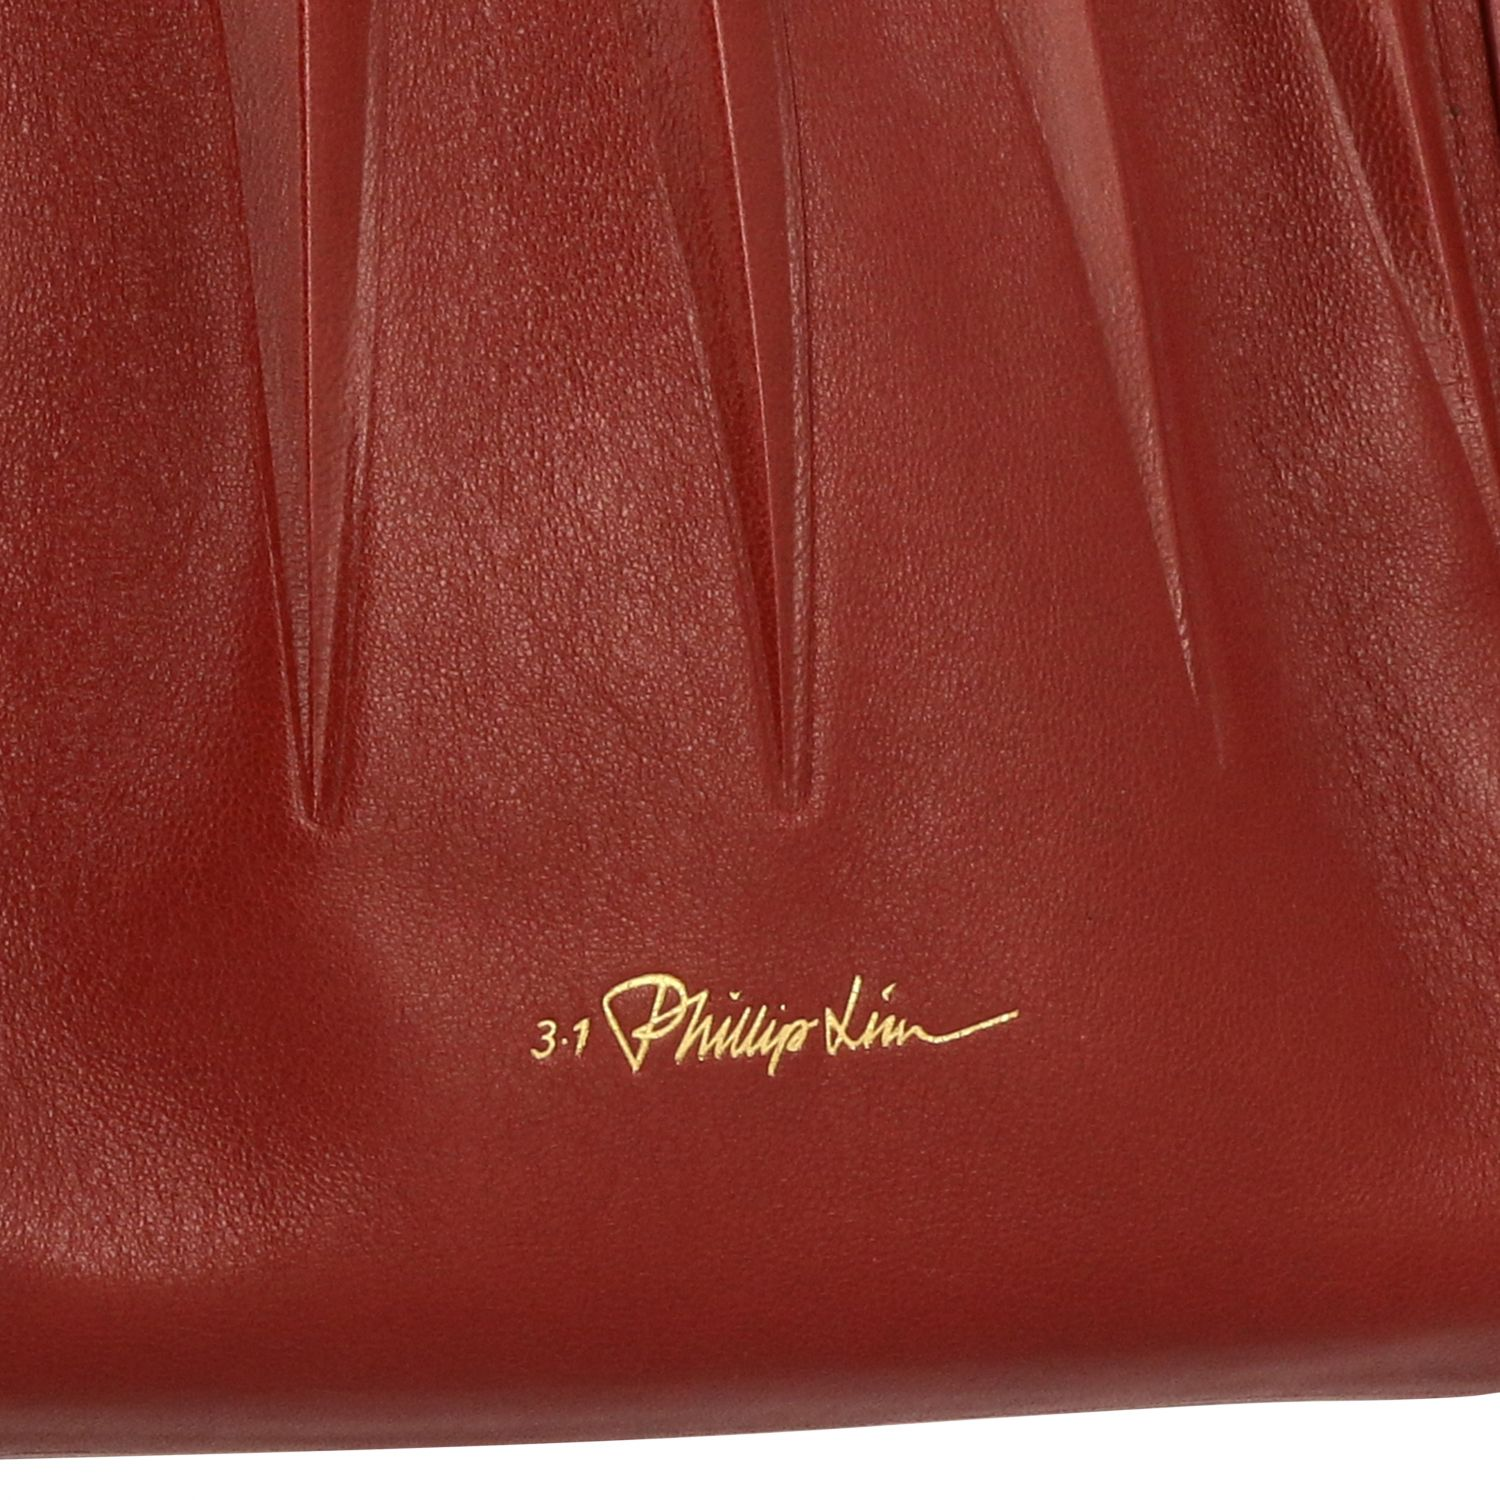 Mini bag 3.1 Phillip Lim: Shoulder bag women 3.1 Phillip Lim red 4